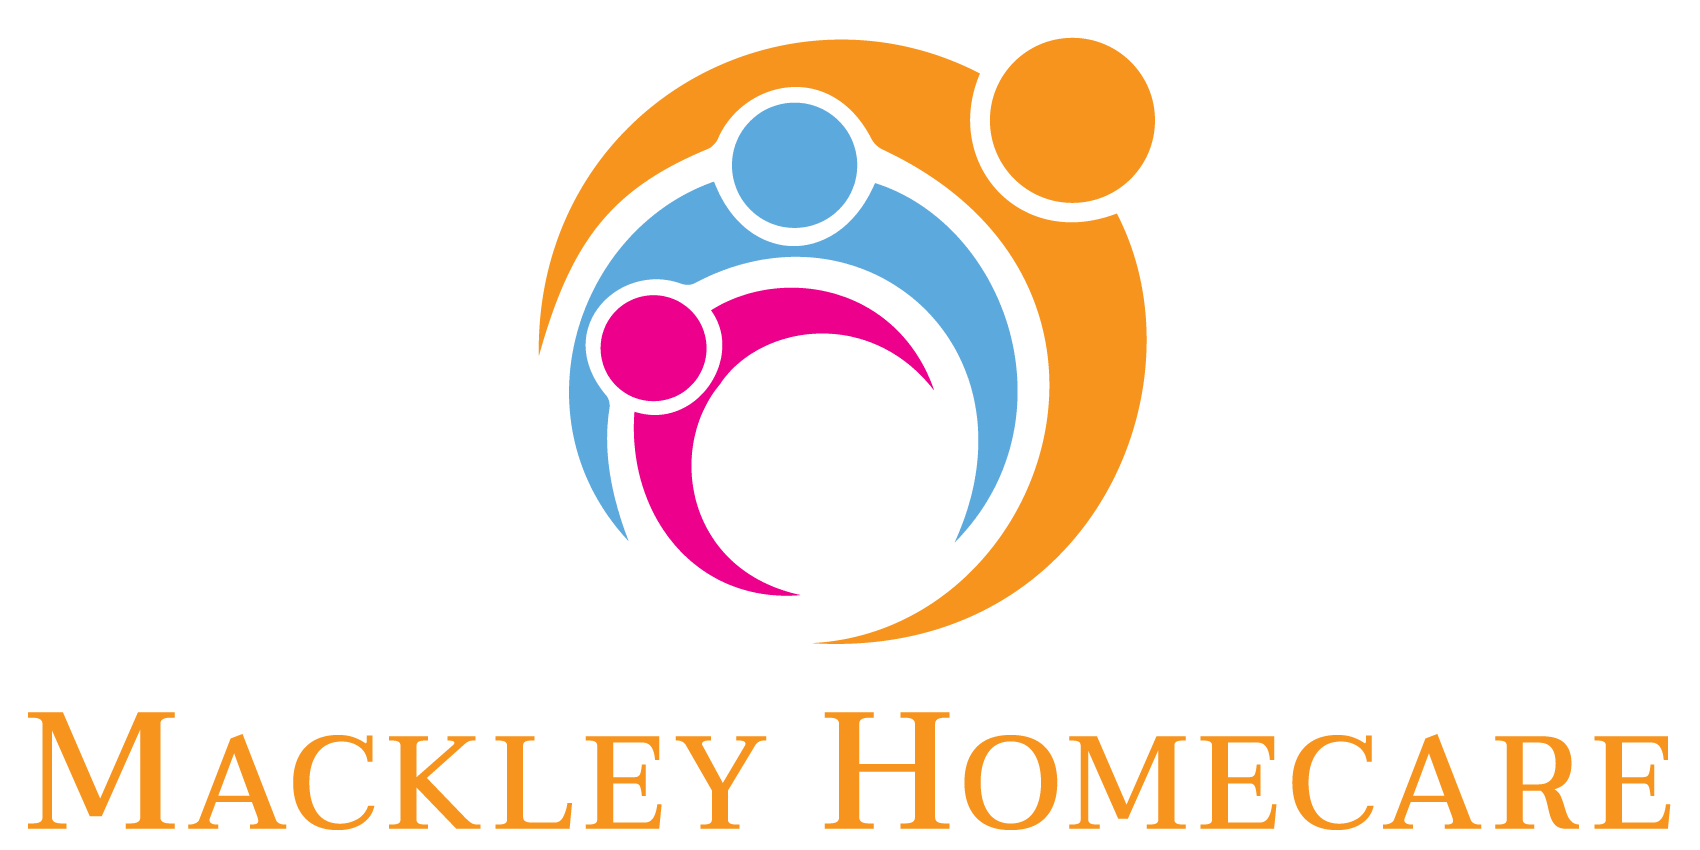 Mackley Homecare